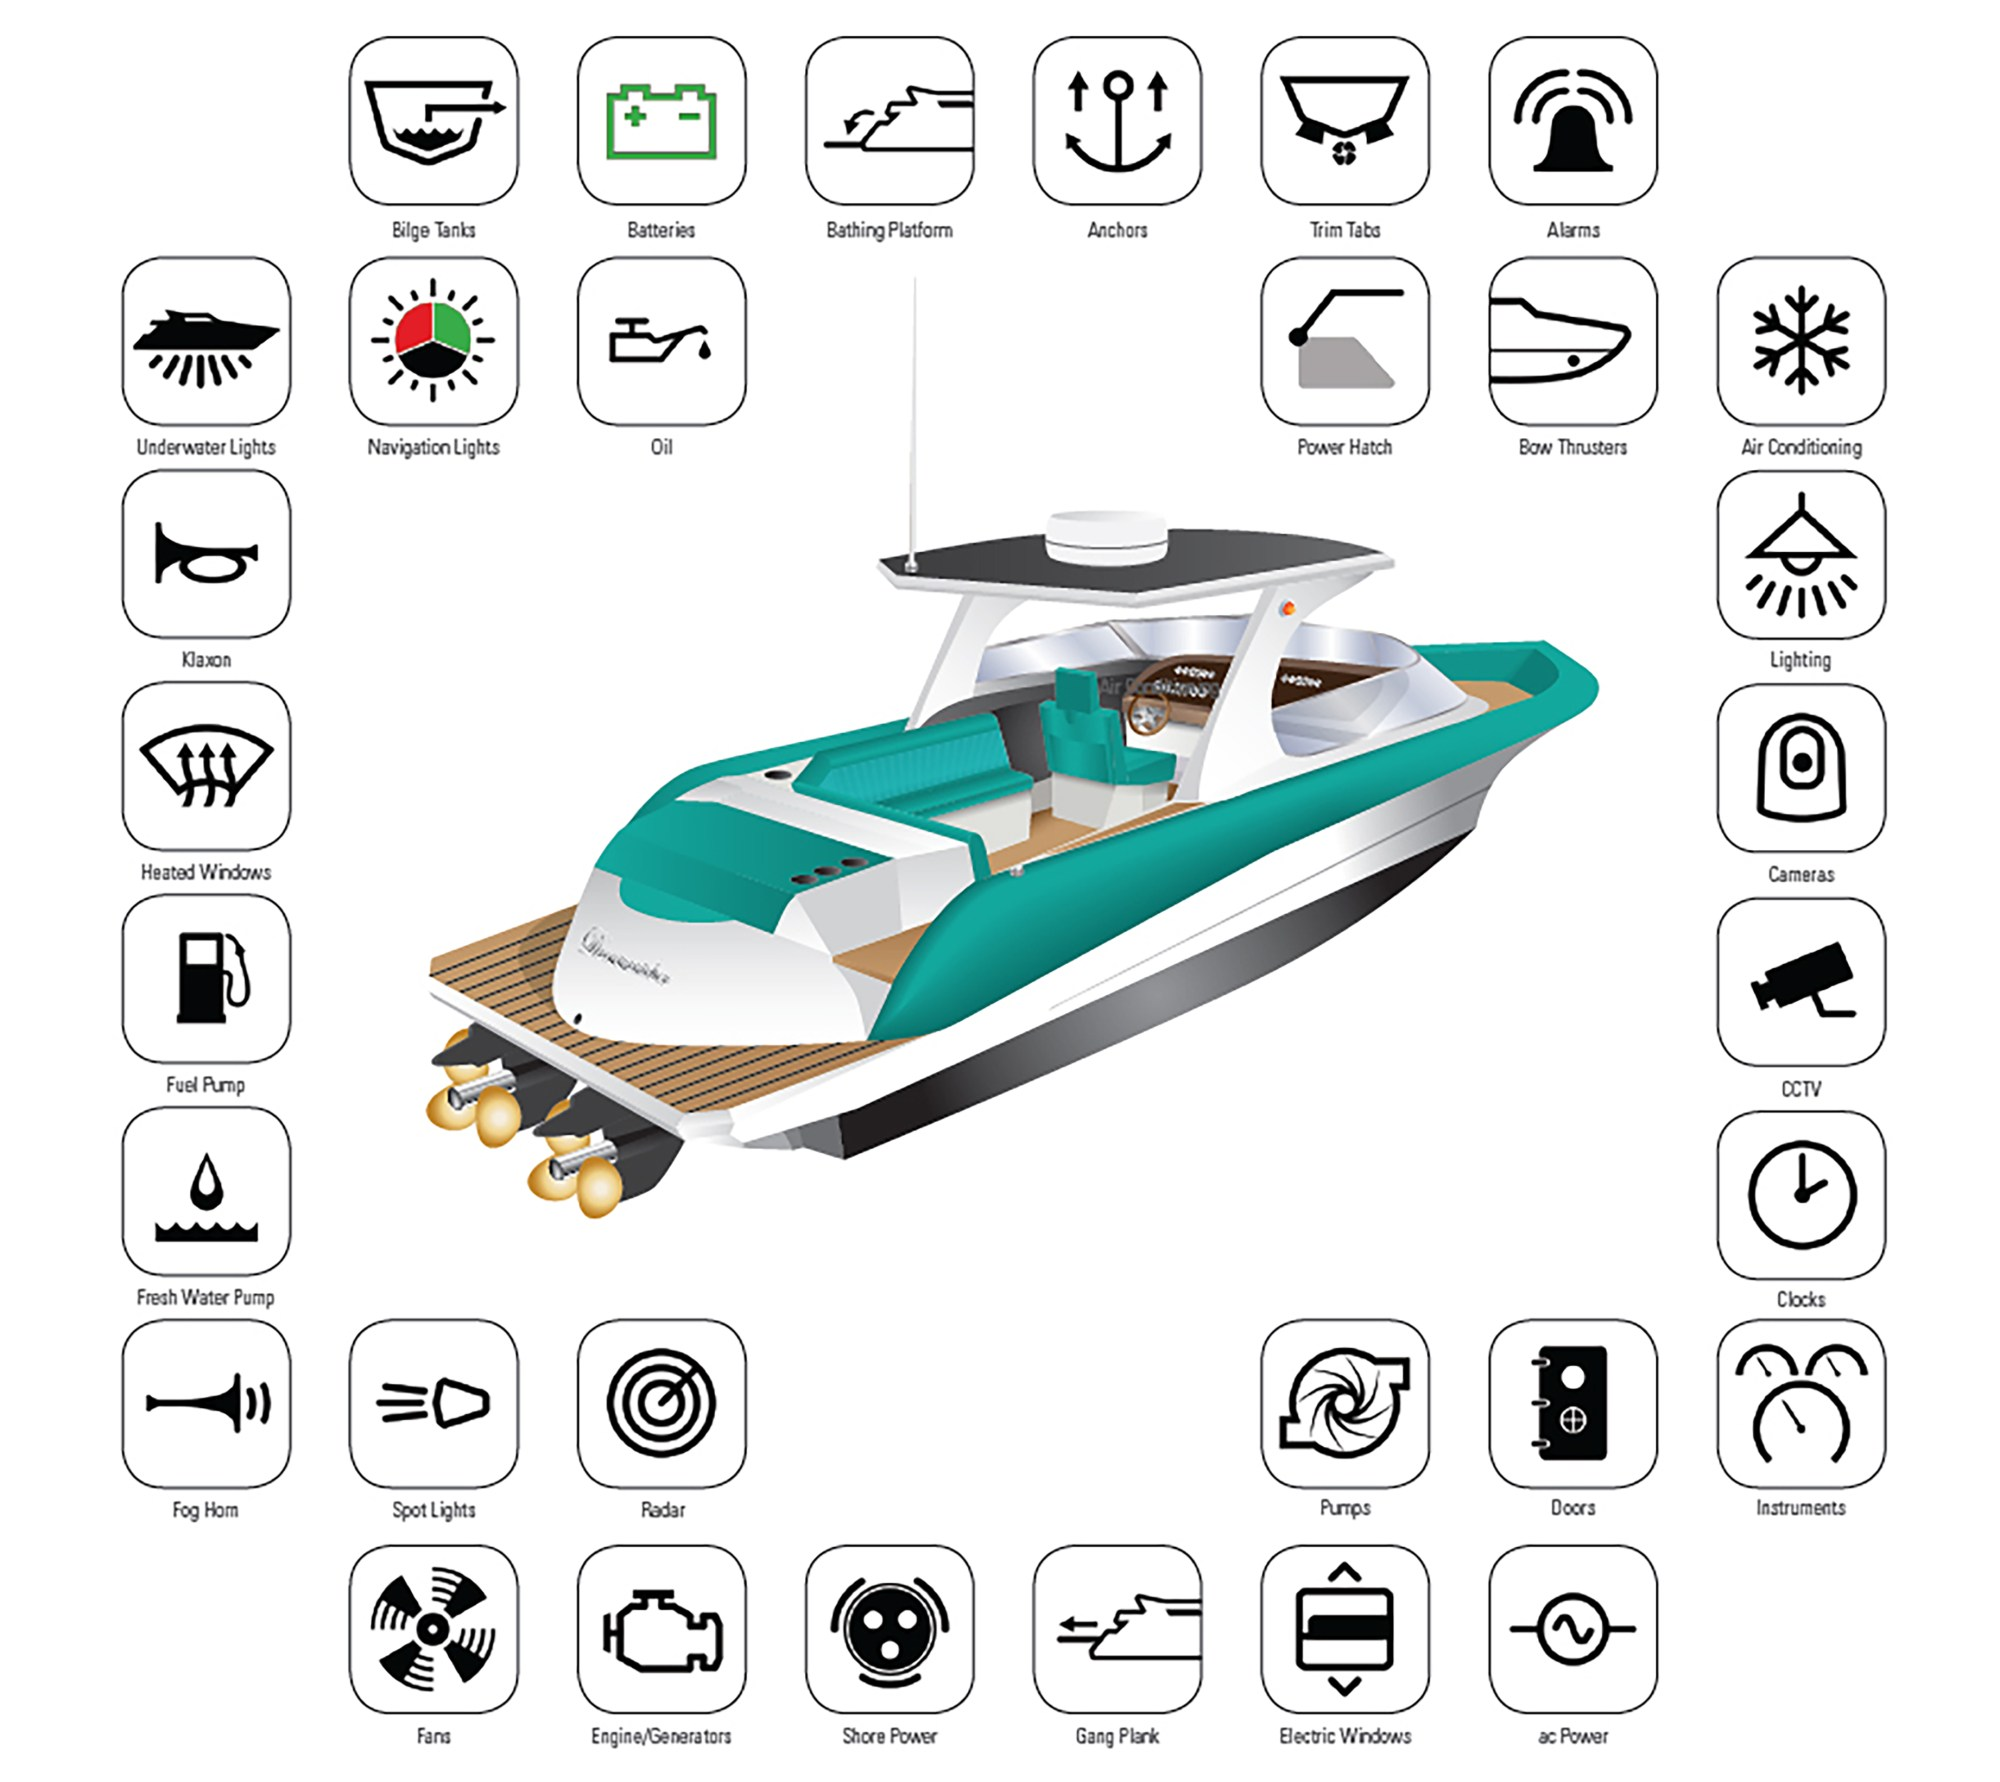 hight resolution of replacing light switch old wiring images replacing outdoor light mariah boat fuse boxboatwiring harness wiring diagram